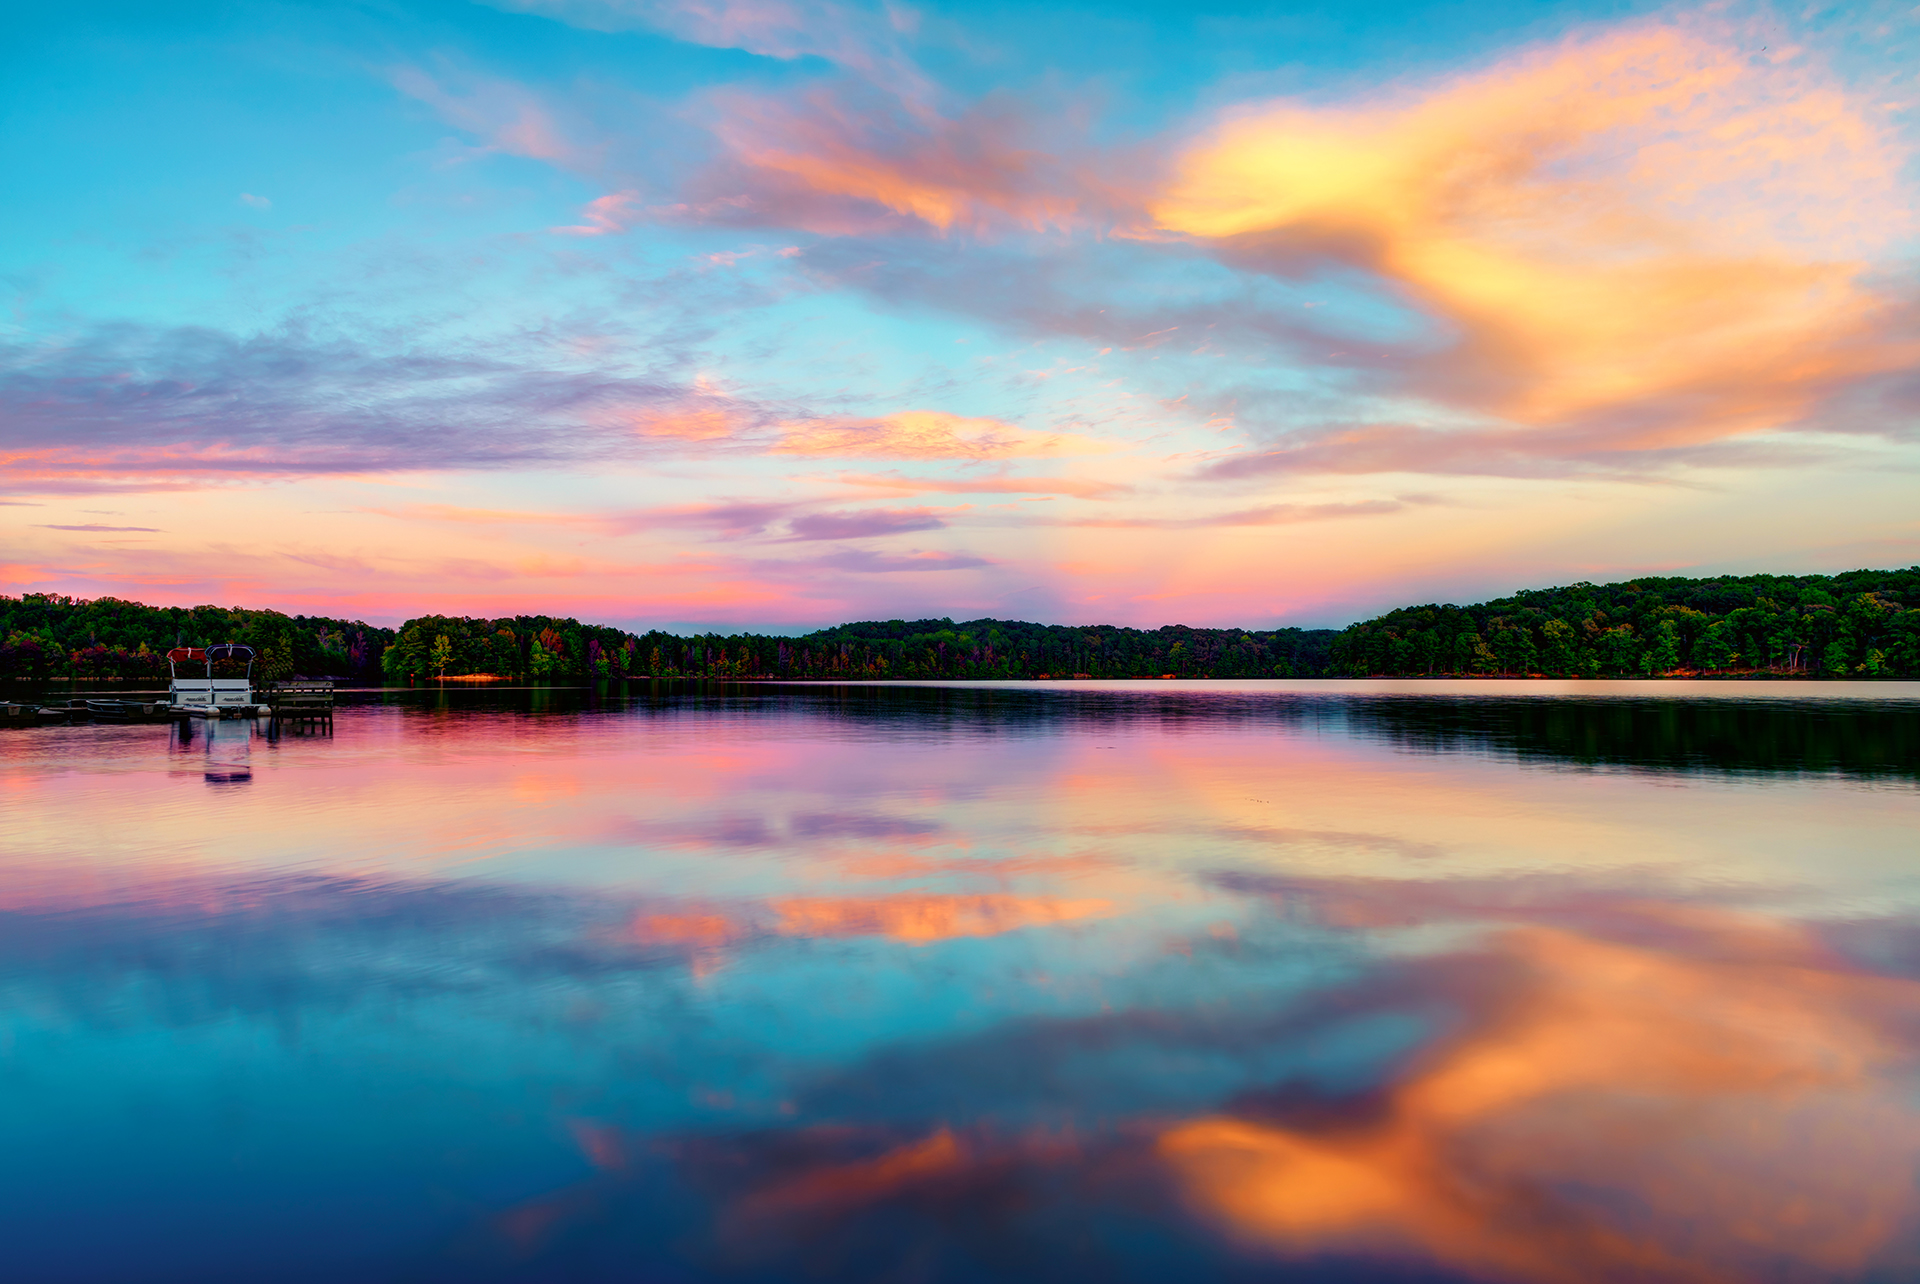 Sweetwater Creek State Park - Colored Reflections Redux